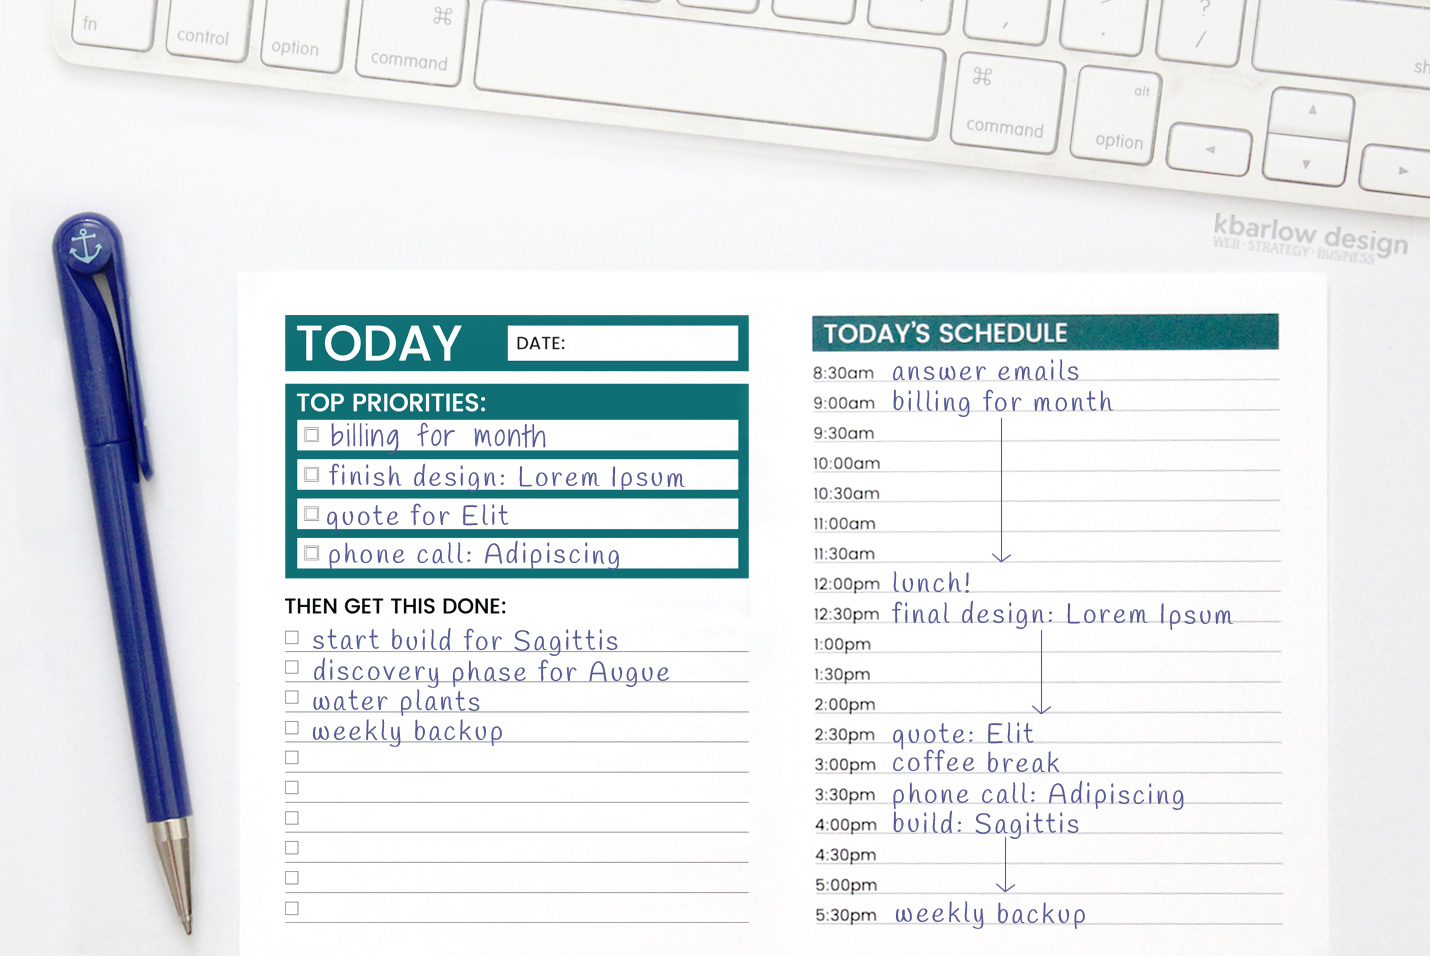 The Ultimate To Do List + Daily Scheduler - Productivity Planners | kbarlowdesign.com